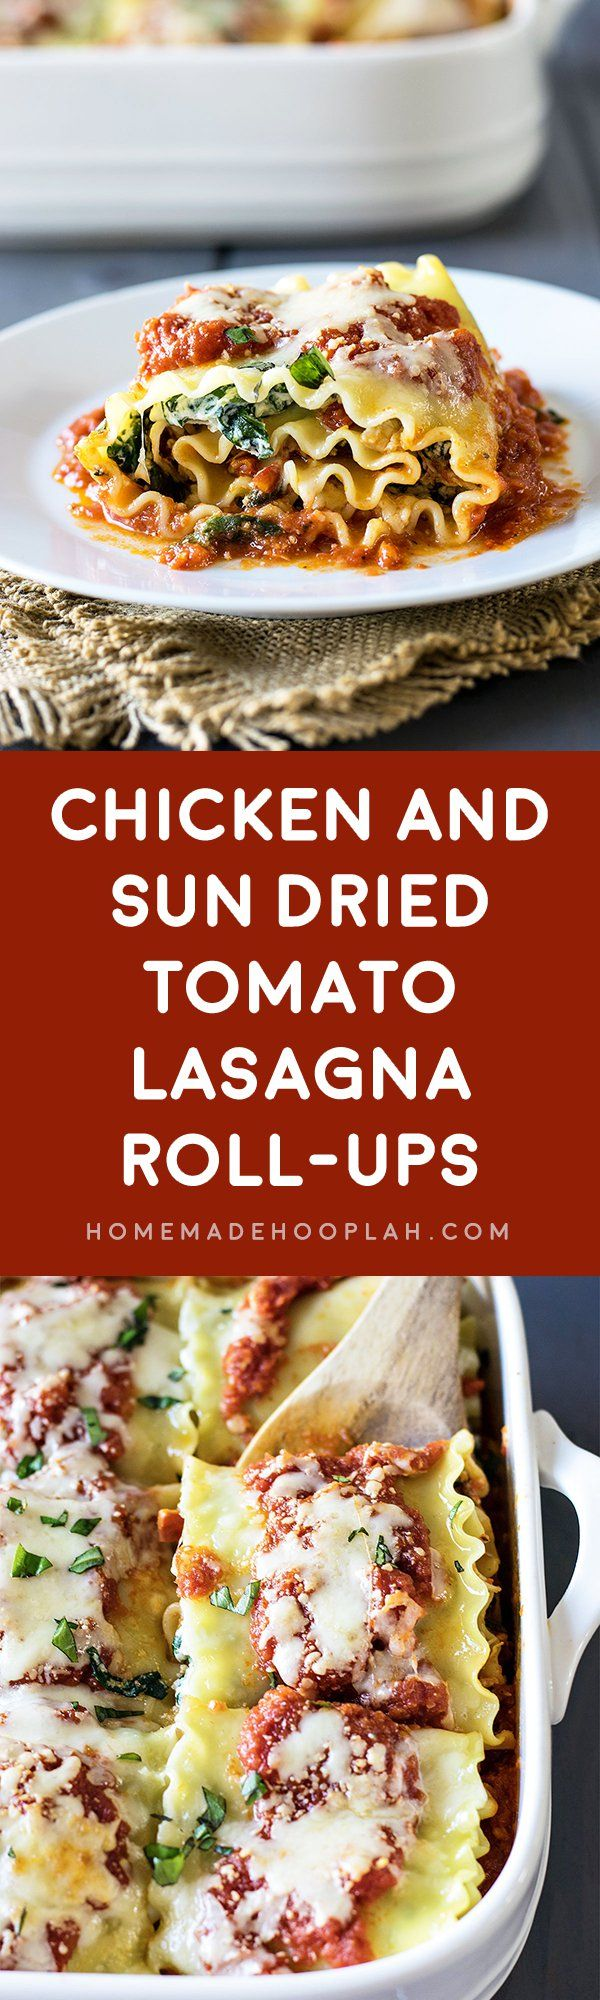 Chicken and Sun Dried Tomato Lasagna Roll-Ups! Take the delicious combo of chicken and sun dried tomatoes and wrap them up in a lasagna roll-up. Two great classics make a bold new flavor!